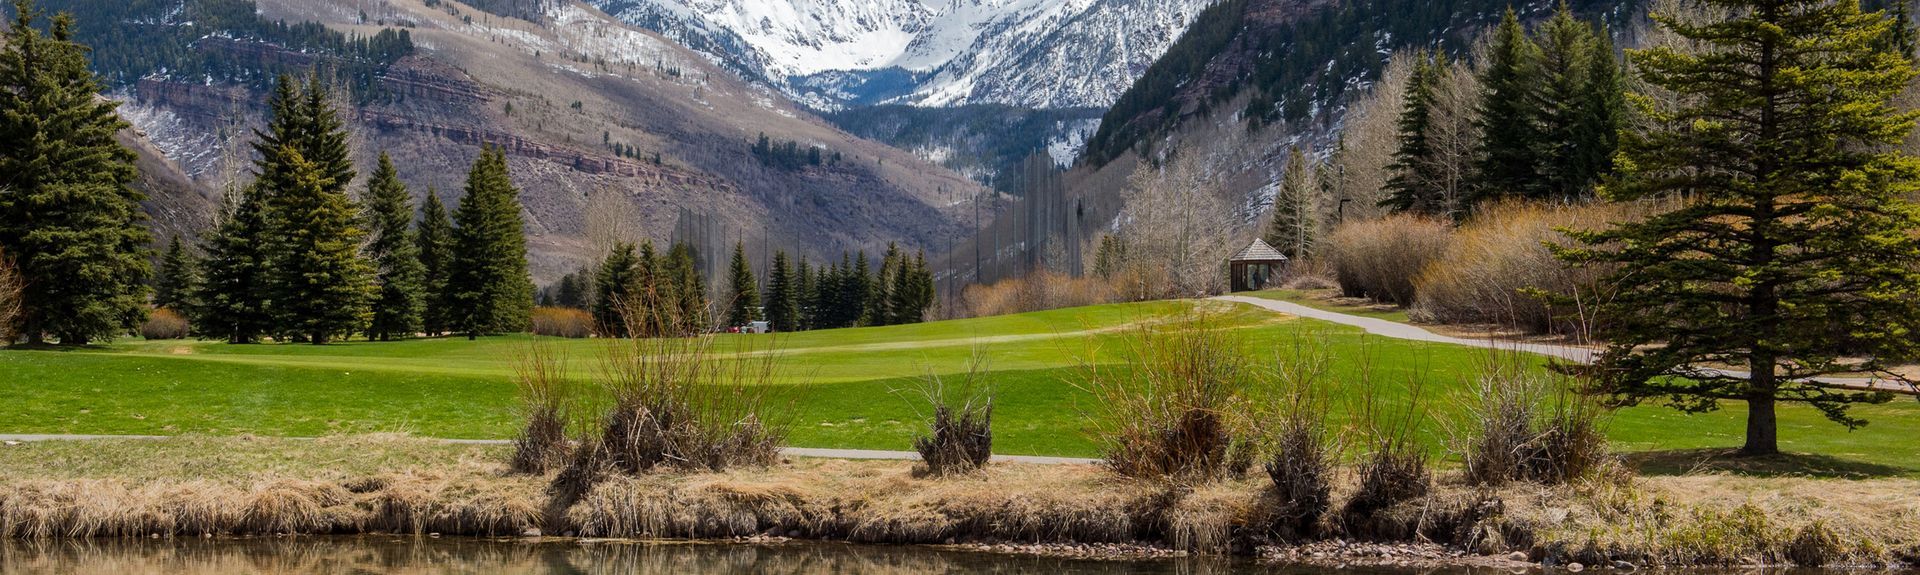 Highland Meadows, Vail, Colorado, United States of America